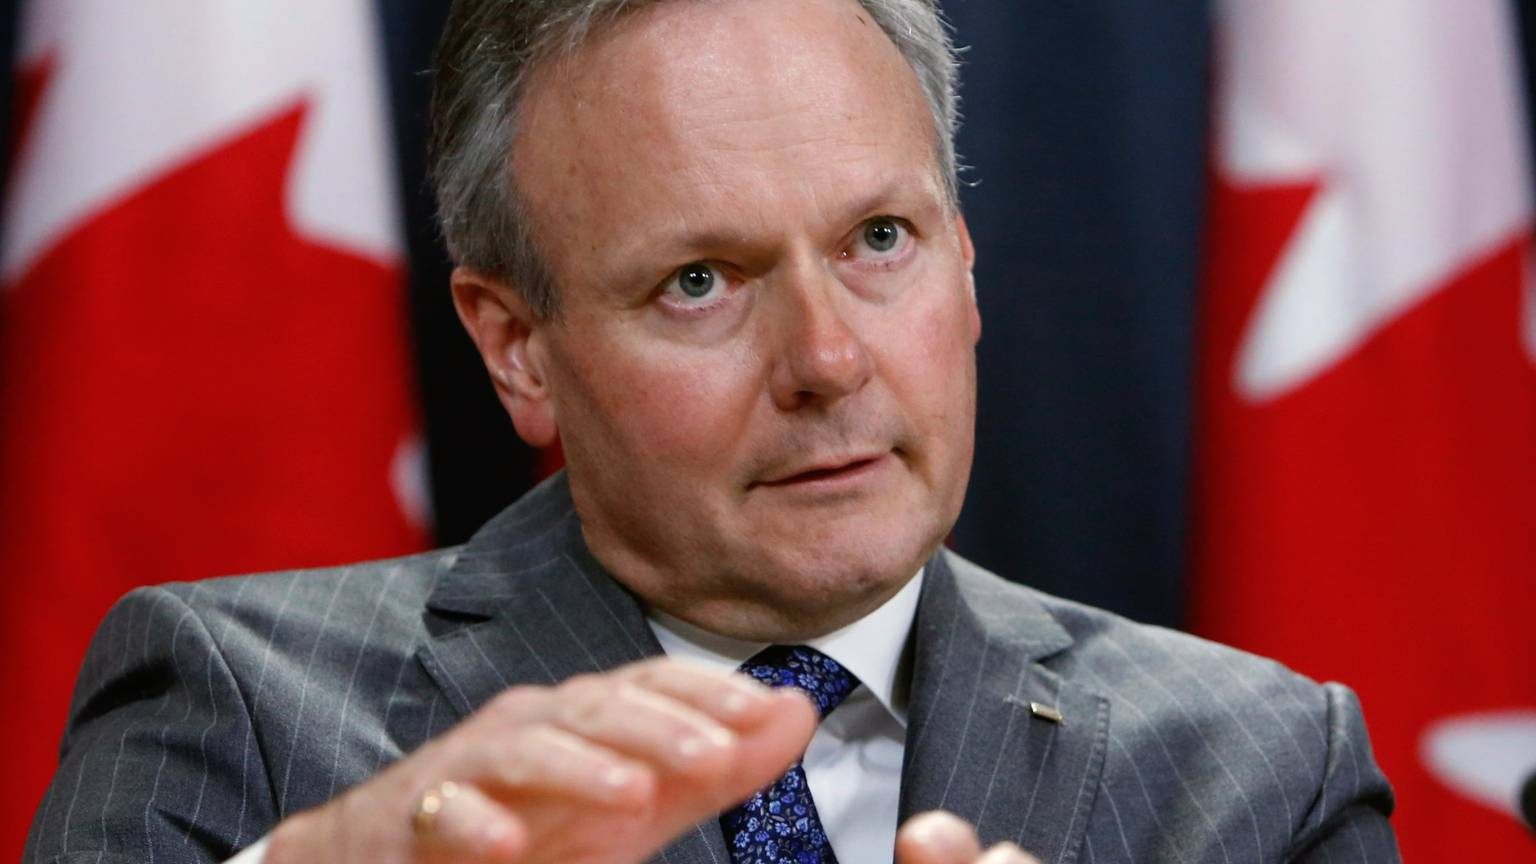 Why the Bank of Canada needs to prepare Canadians for rate hikes